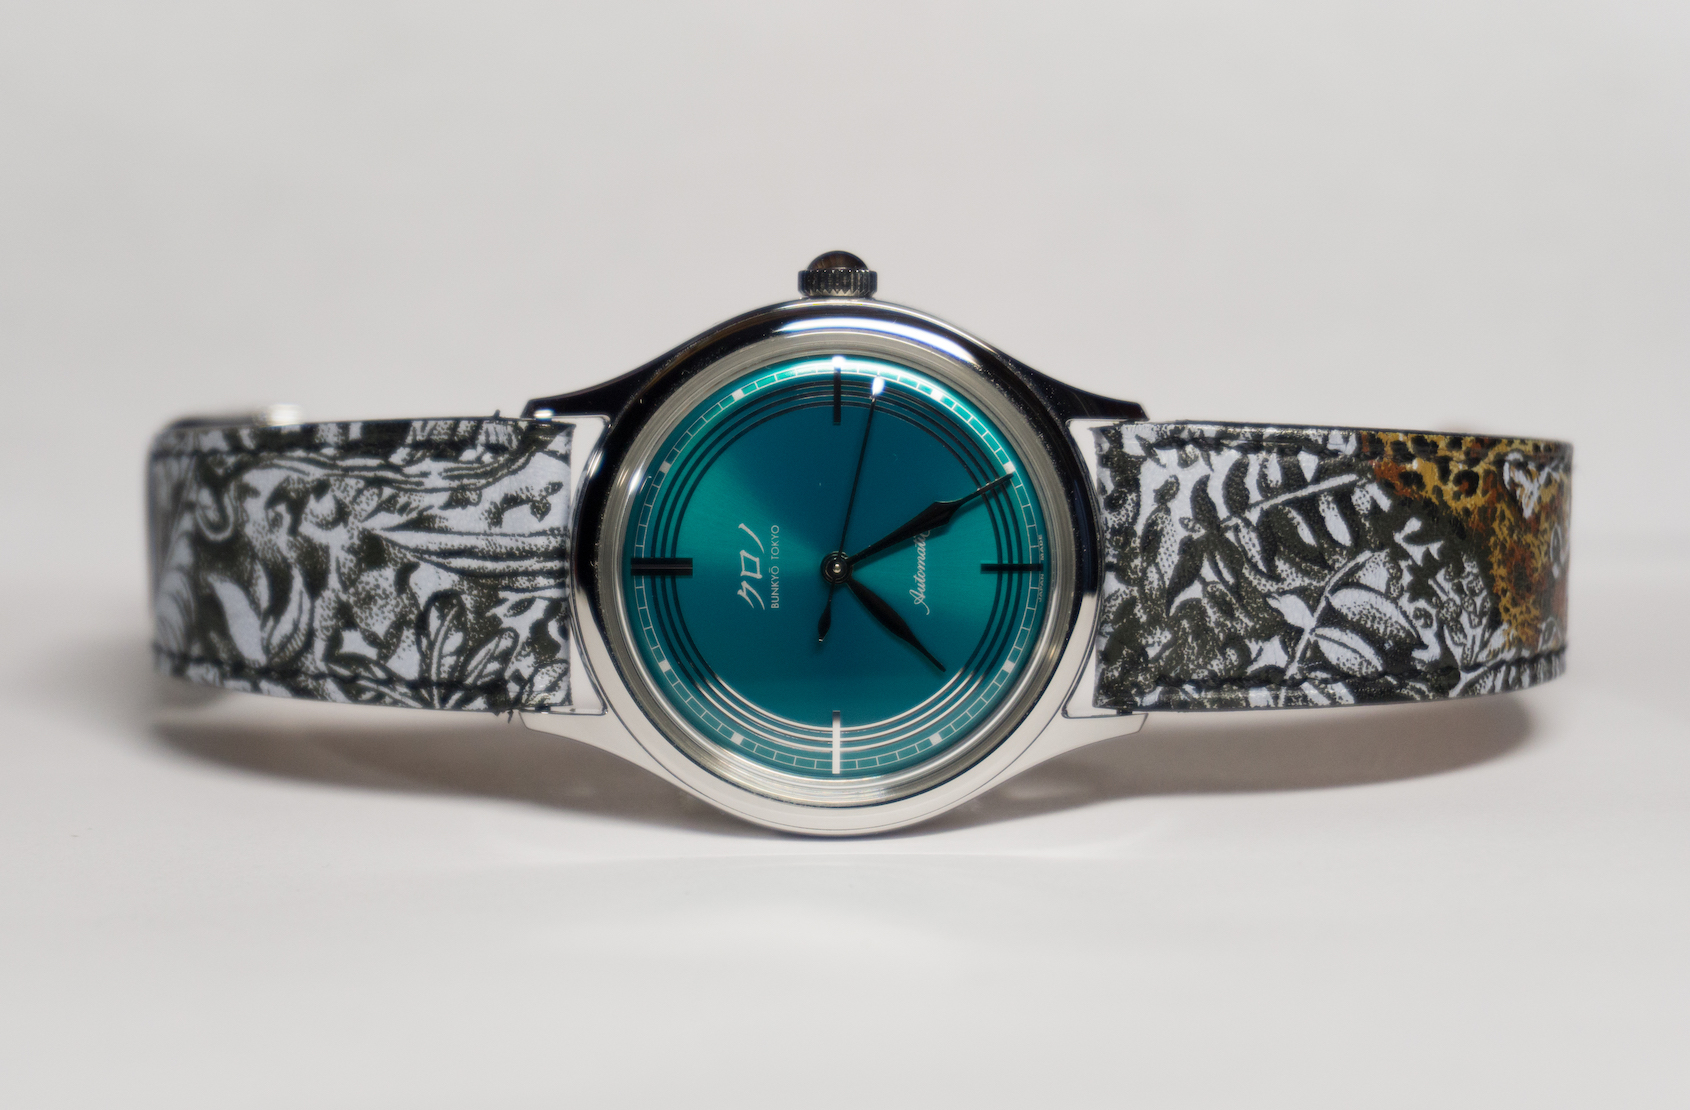 Kurono watches